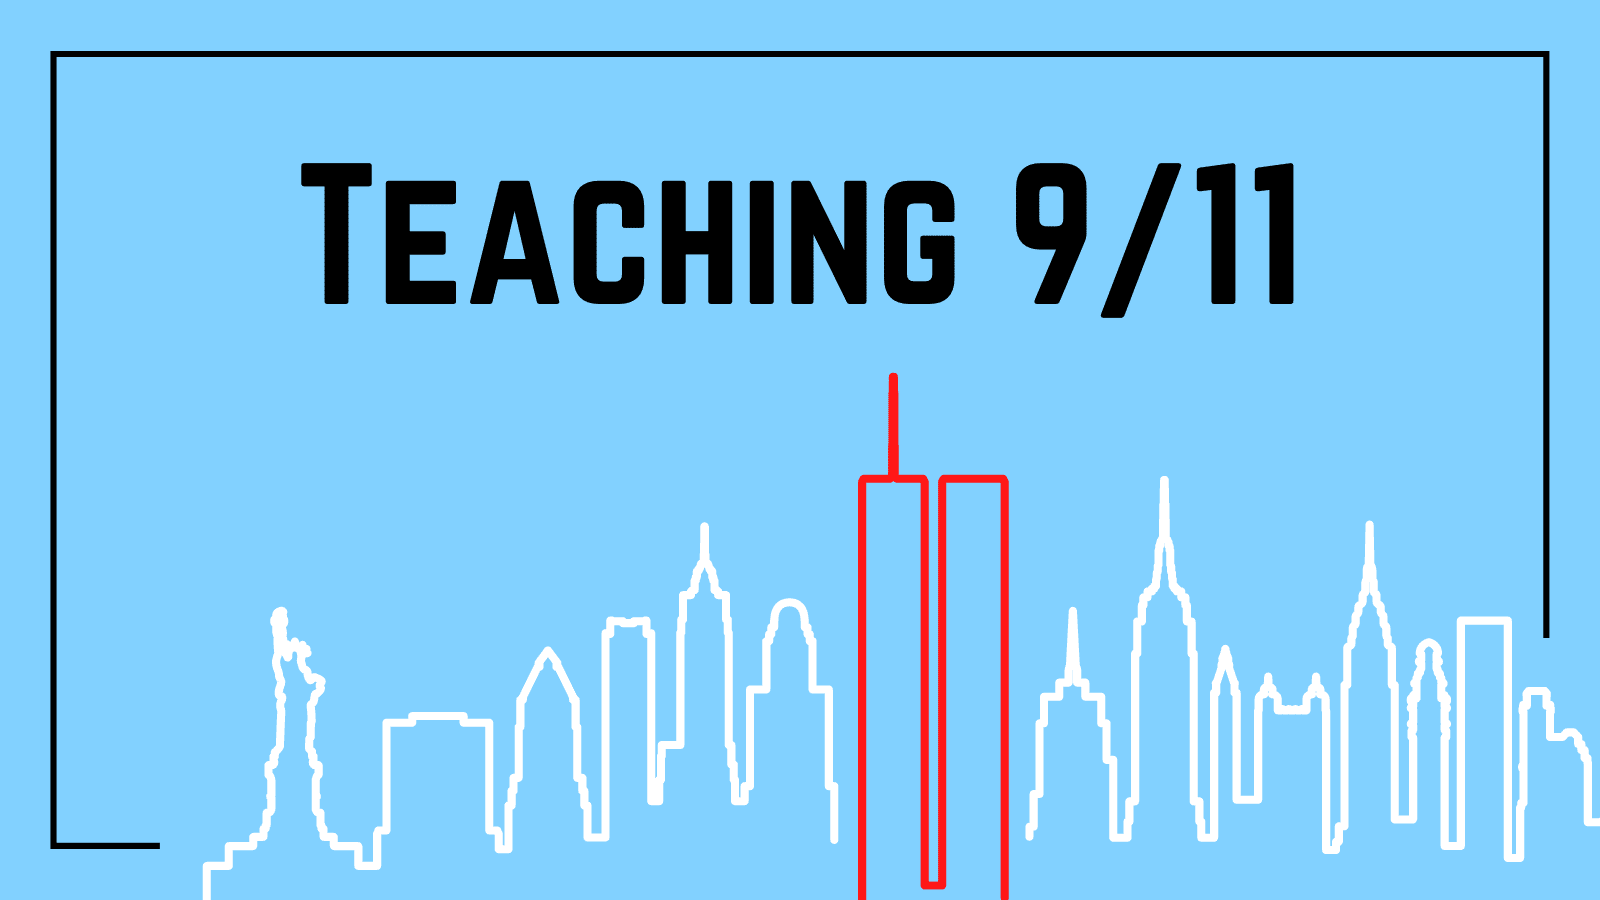 Teaching 9/11 to students